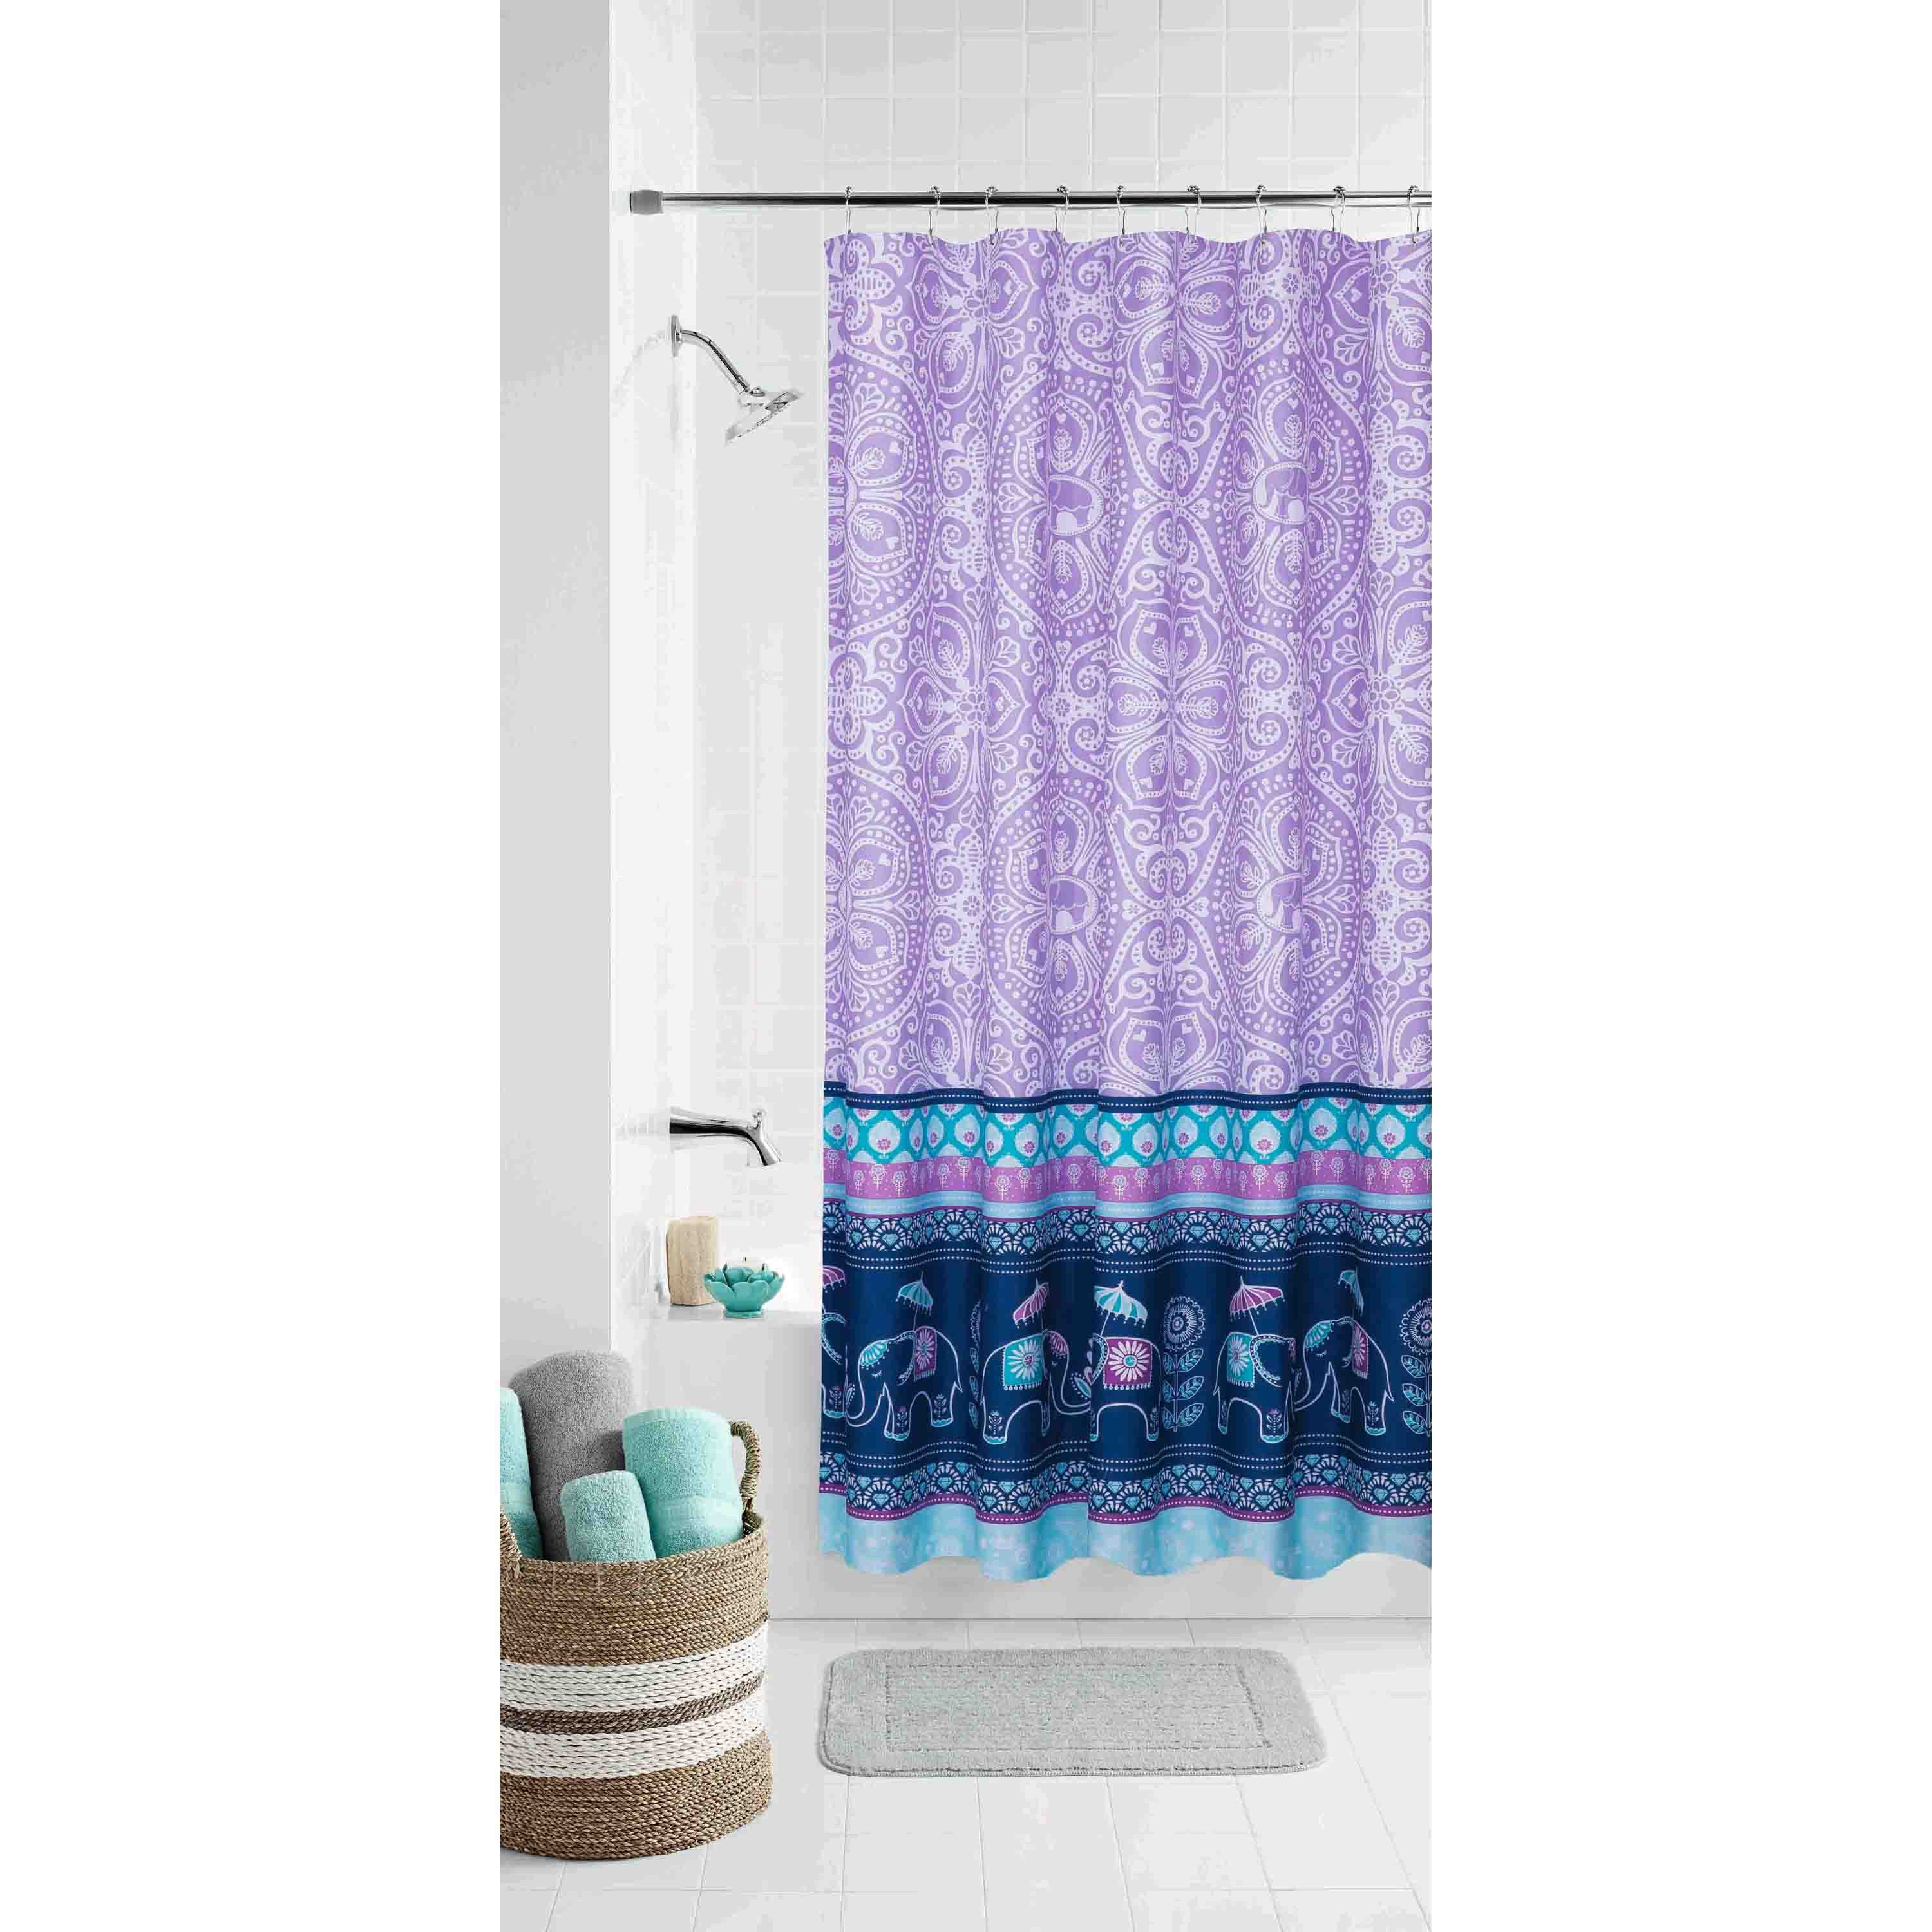 Mainstays Kids Elle Boho Coordinating Fabric Shower Curtain